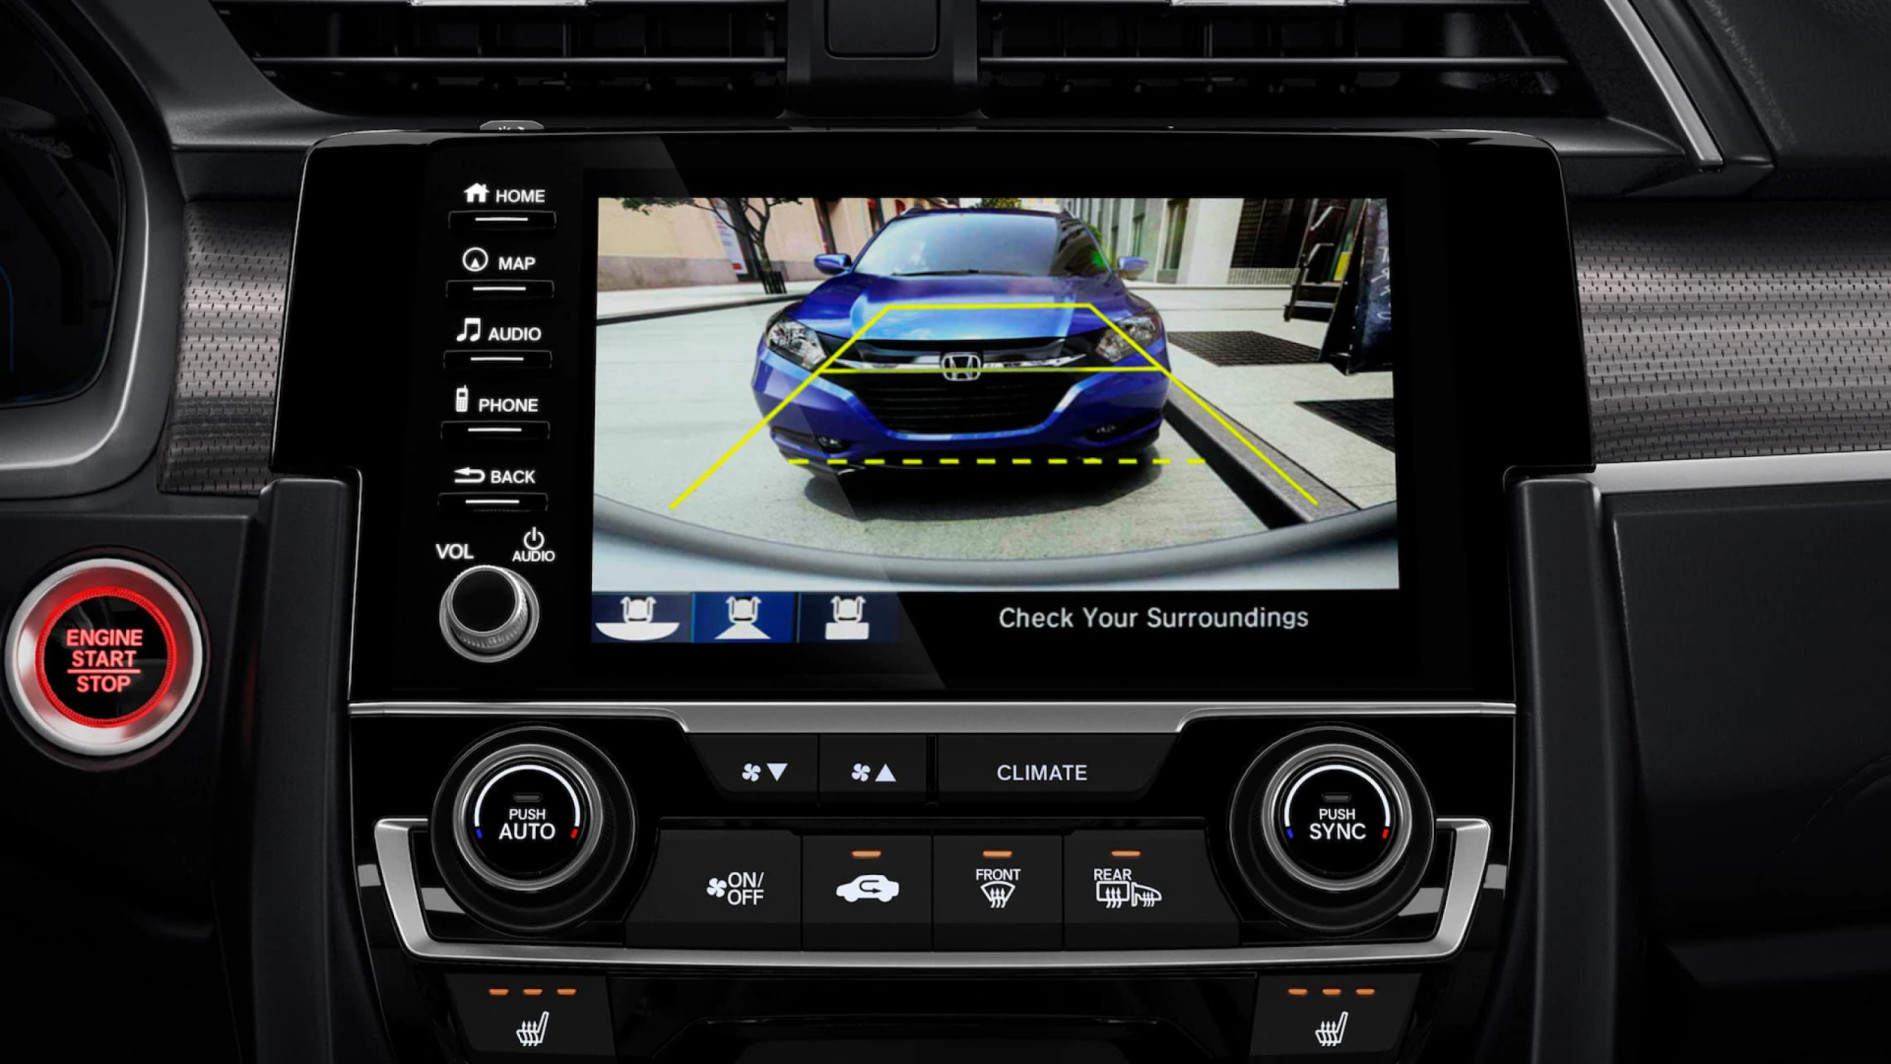 Safety Tech in the 2020 Honda Civic